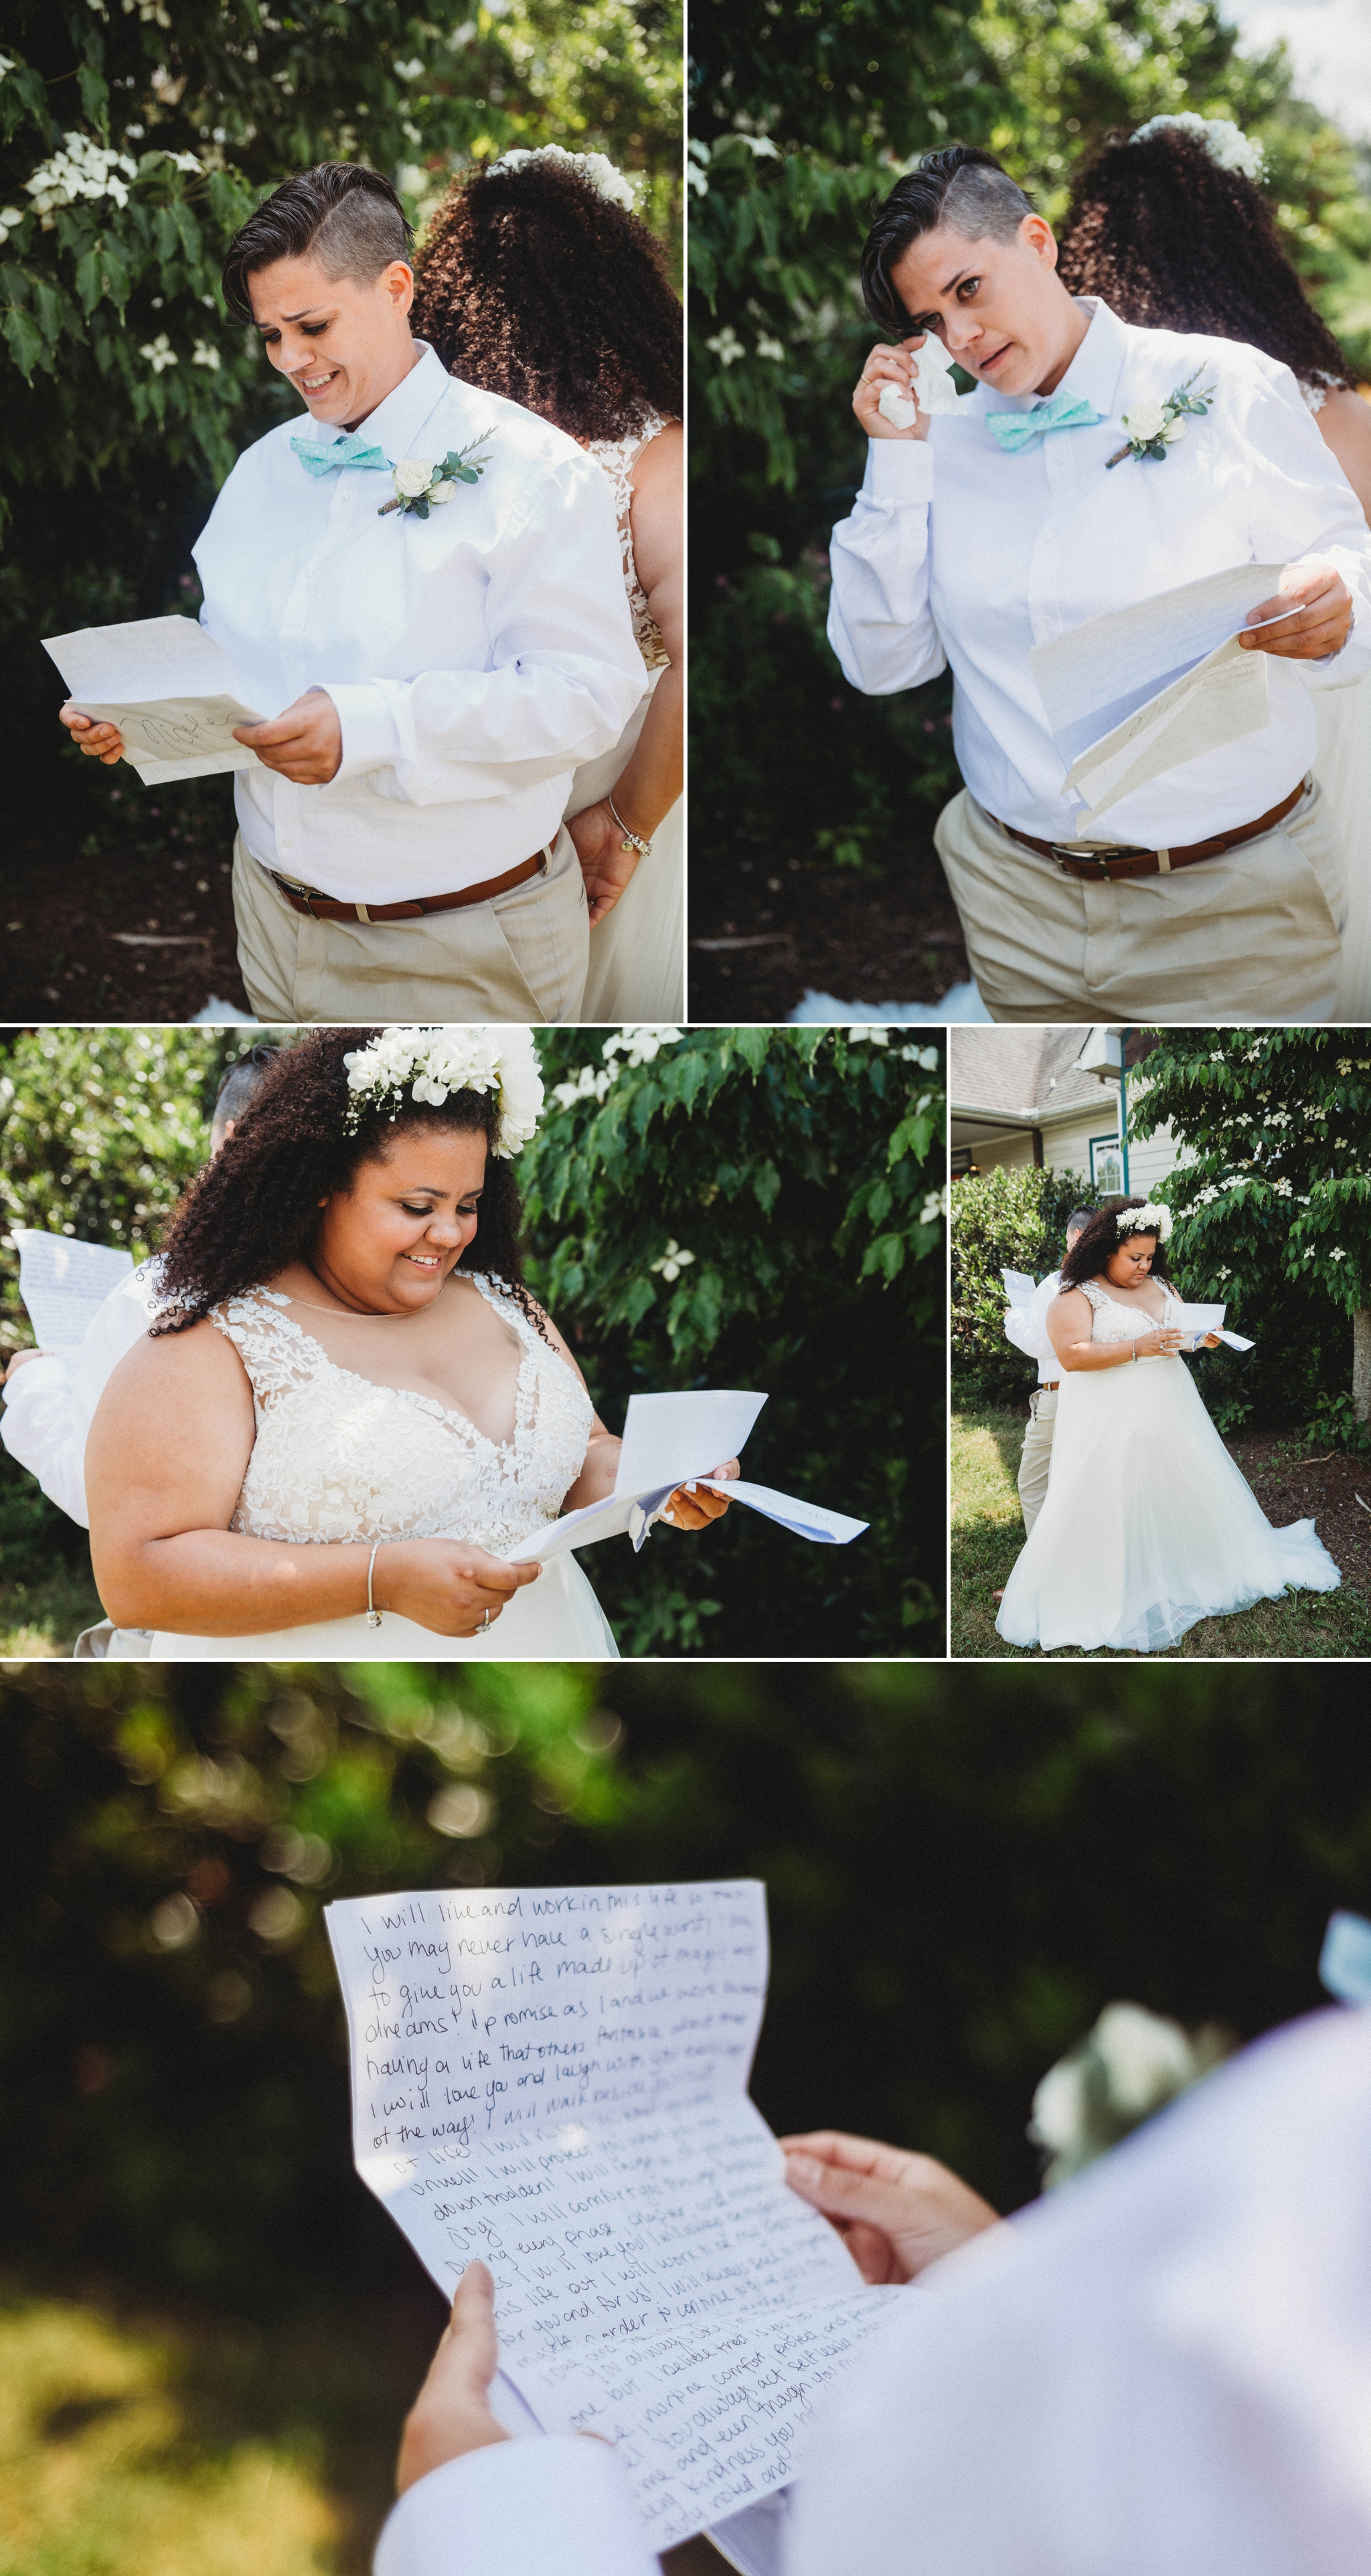 Mercedes + Nicole - Same Sex Wedding at a Waterfall and the Grand Bohemian Hotel in Asheville, North Carolina 7.jpg